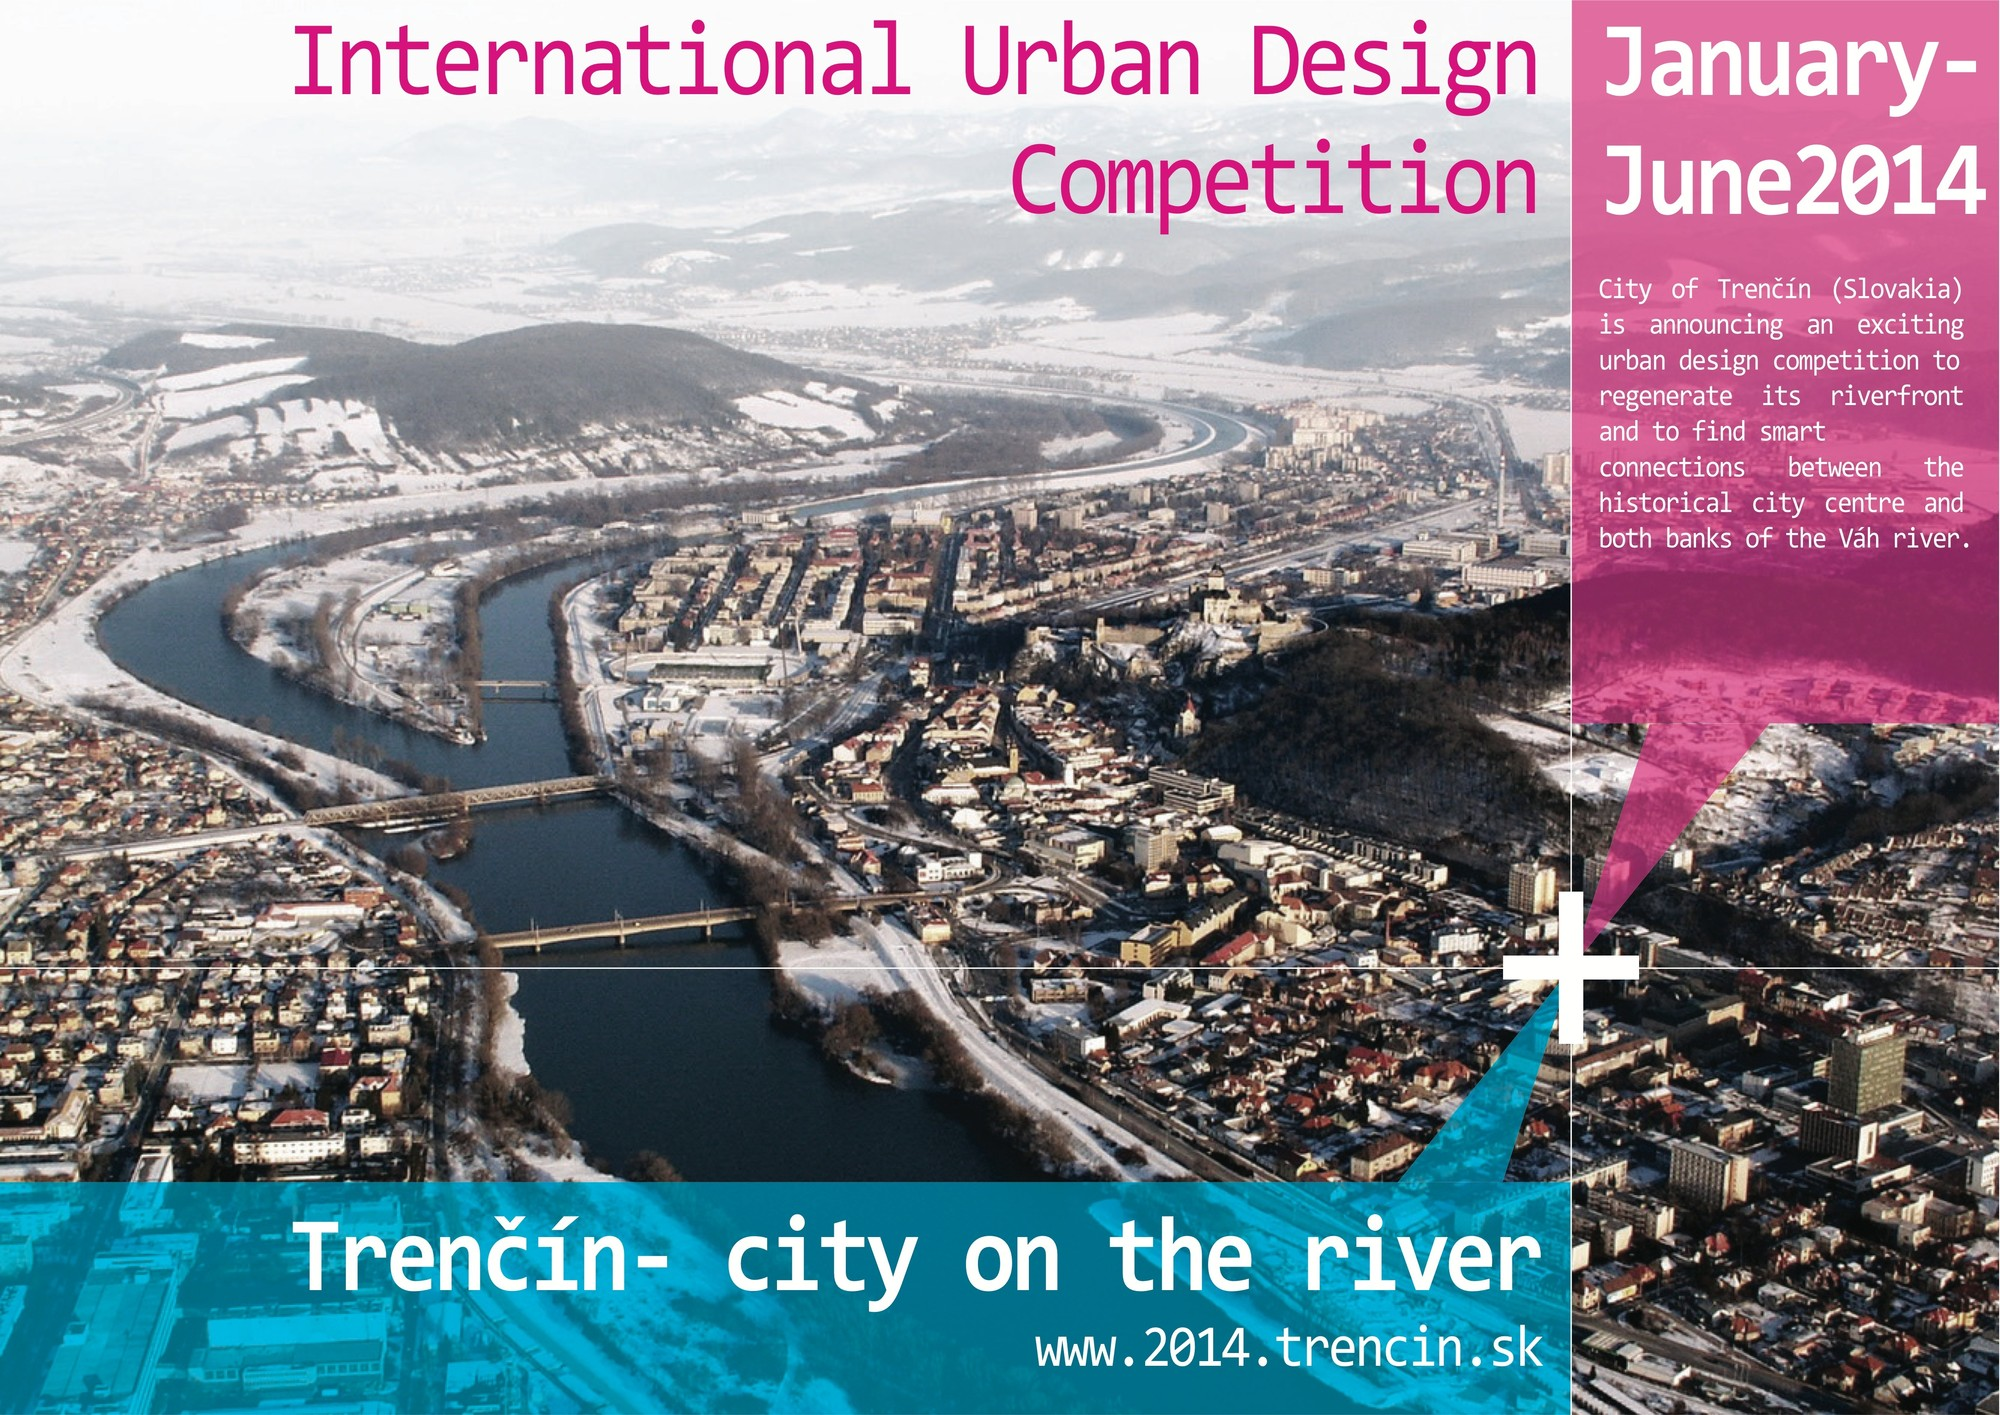 International Urban Design Ideas Competition - Trenčín – City on the River